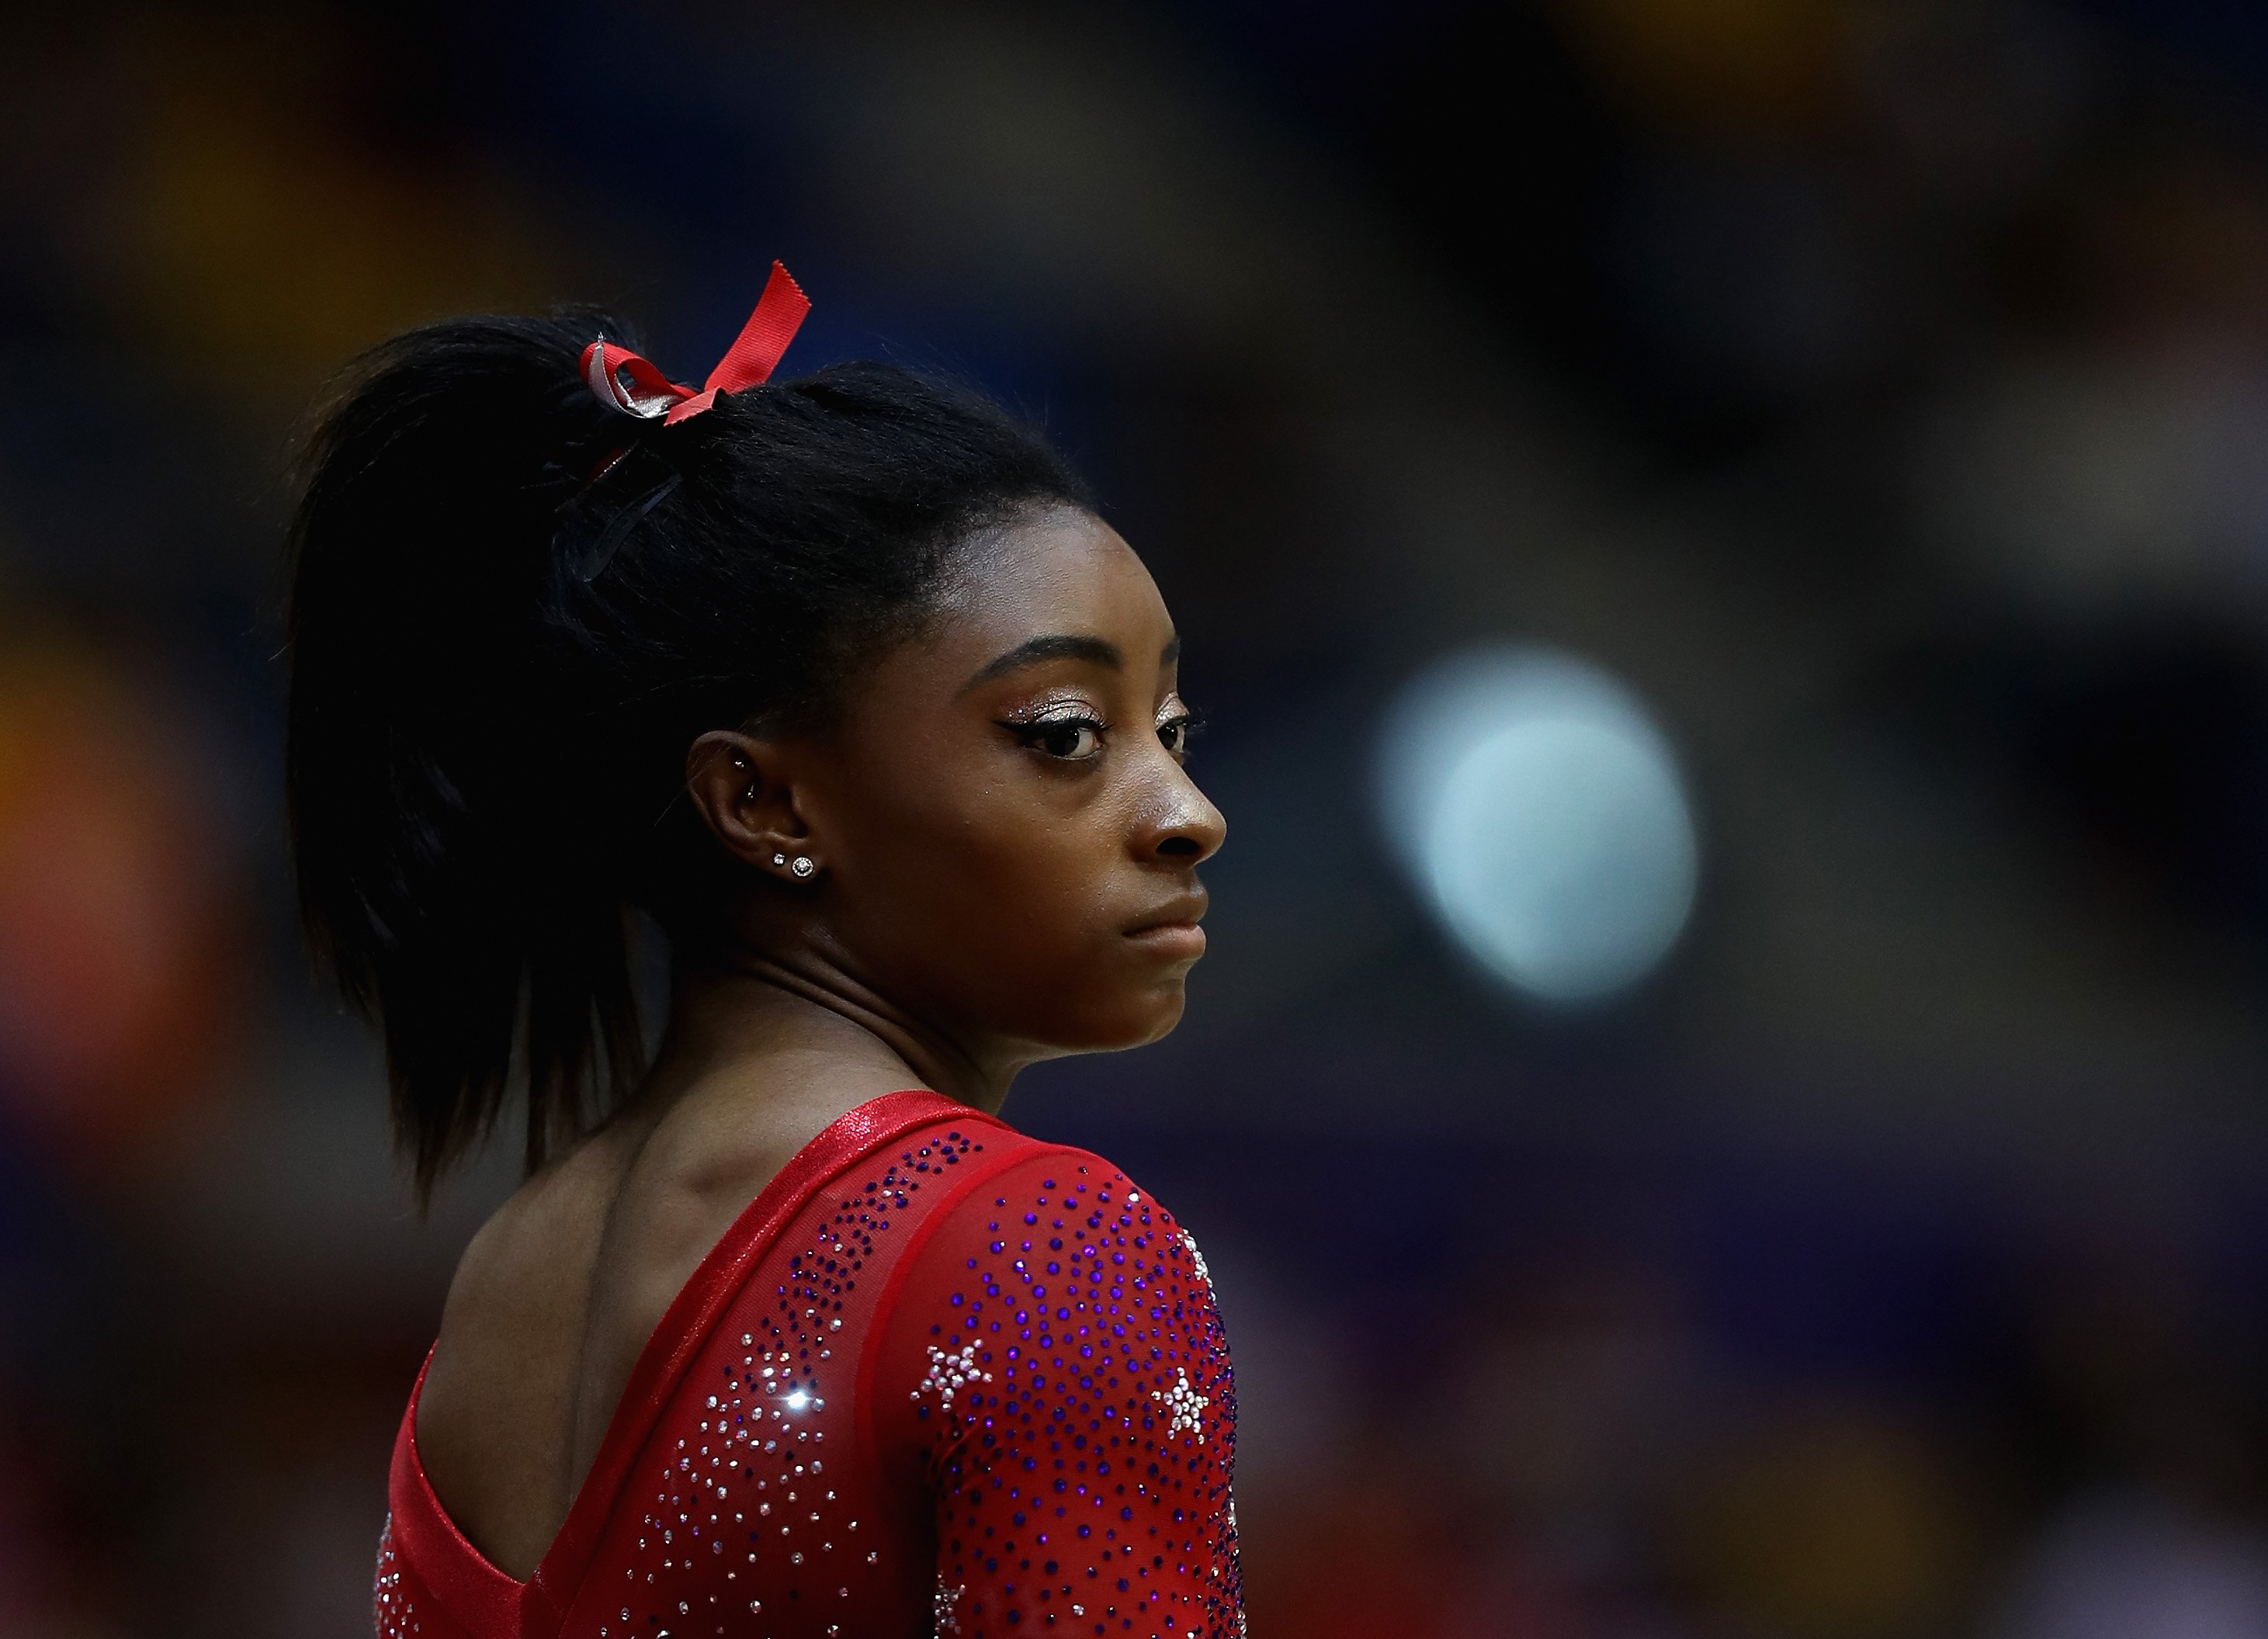 Simone Biles at the 2018 FIG Artistic Gymnastics Championships at Aspire Dome on October 30, 2018 in Doha, Qatar | Photo: Getty Images